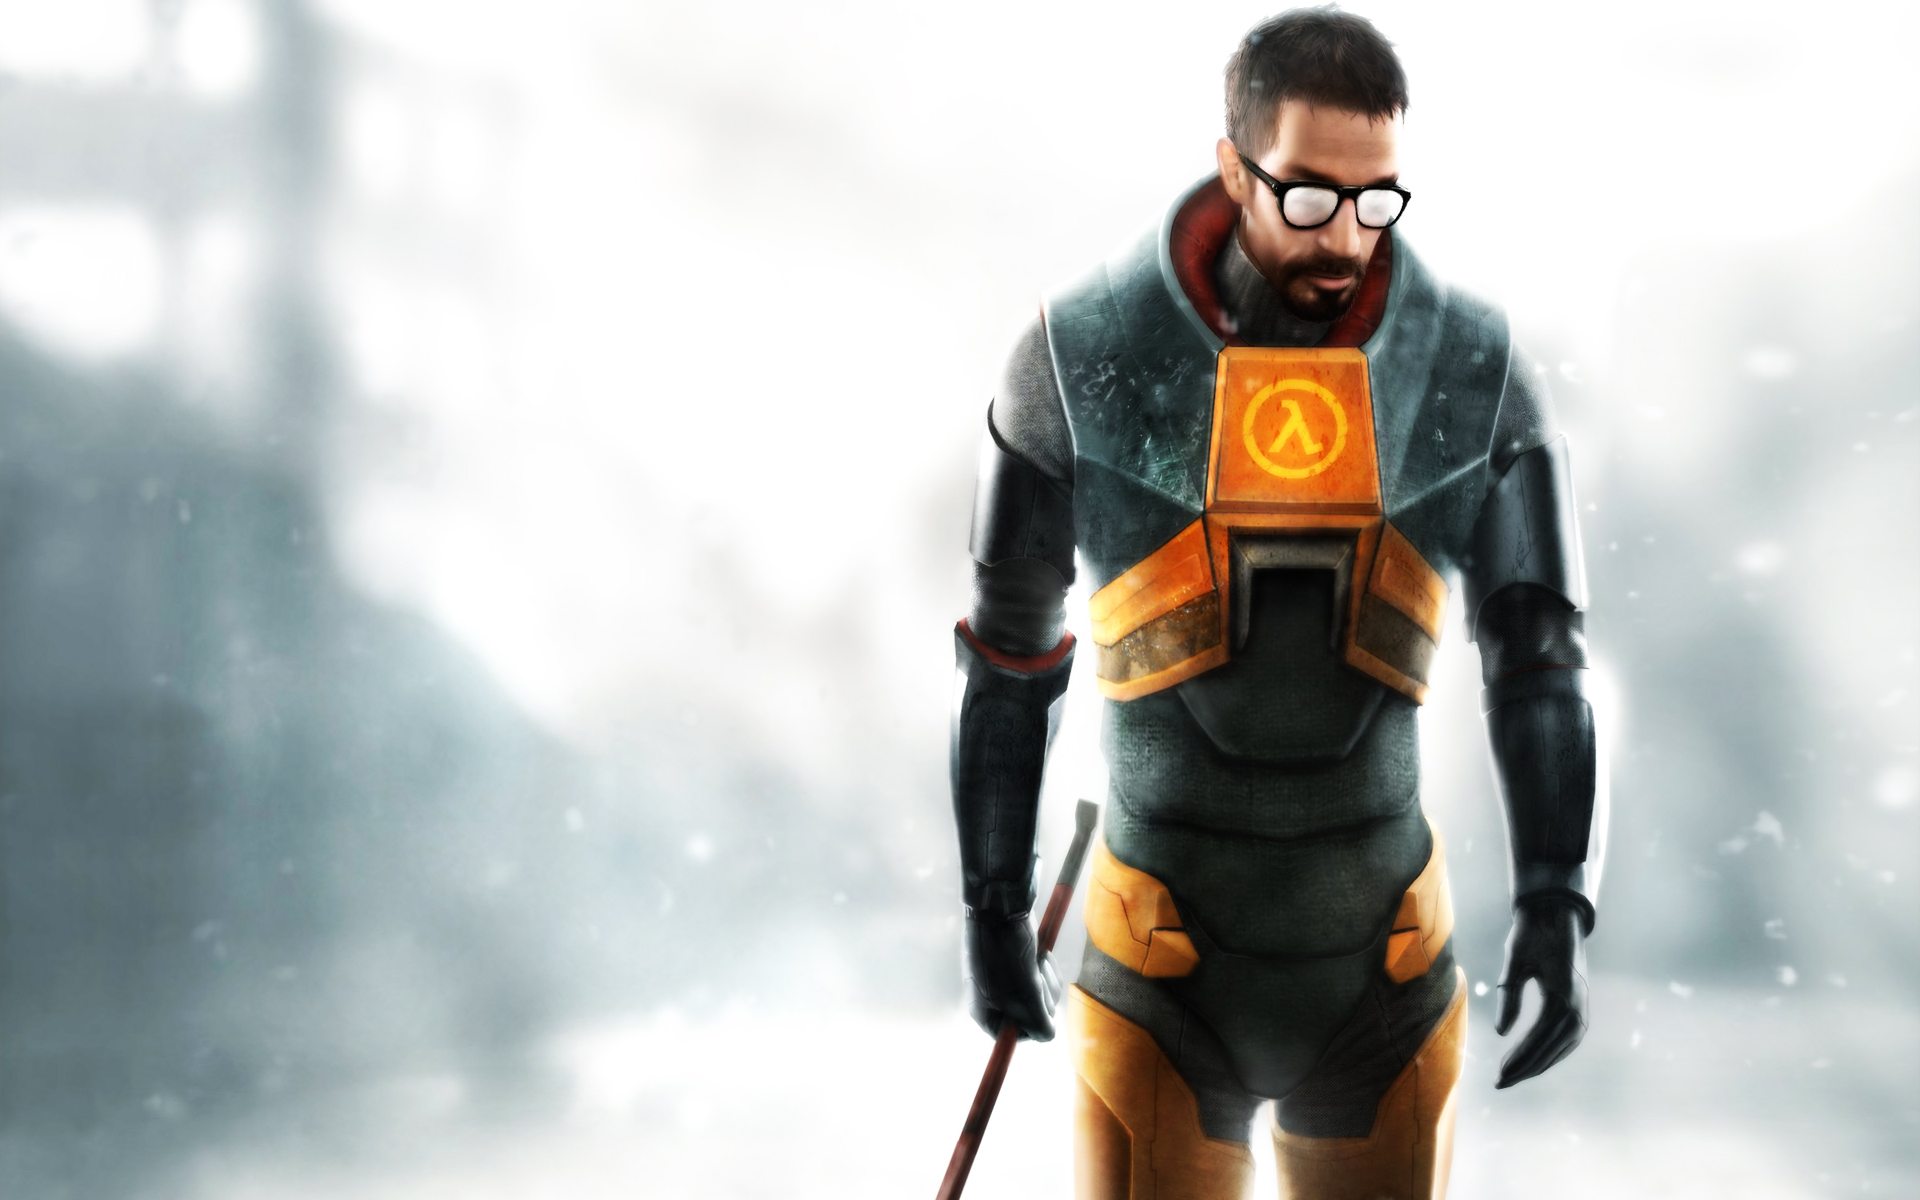 Video Game - Half-life  - Red - Abstract Wallpaper